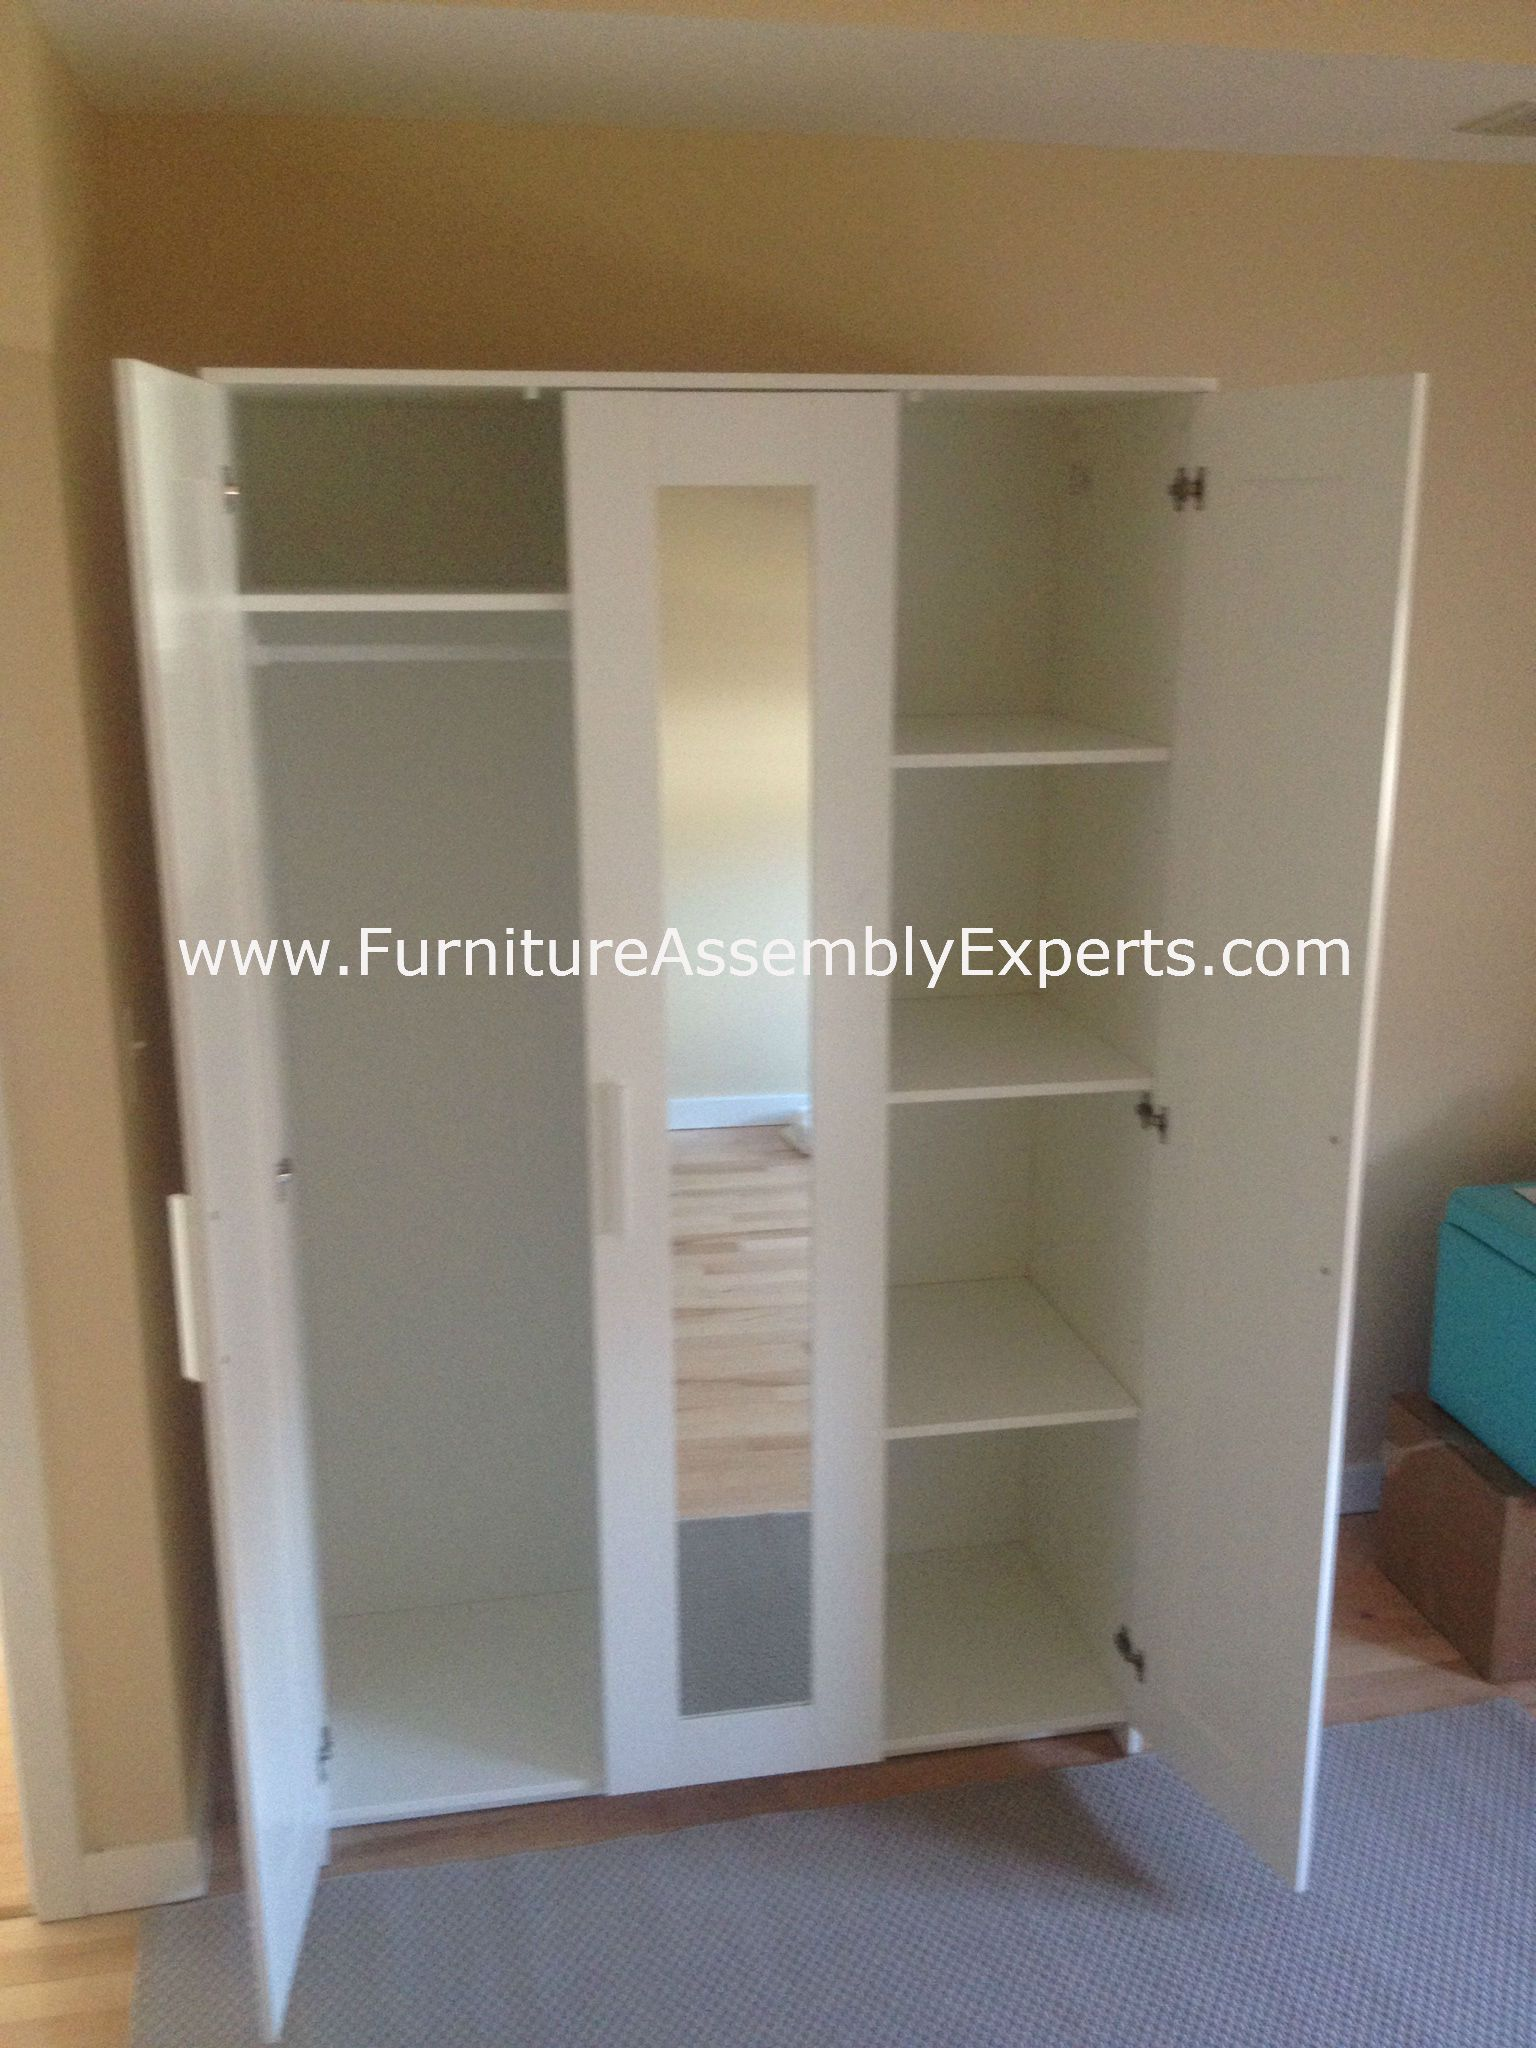 e15bd258111e ikea brimnes wardrobe assembled in philadelphia PA by Furniture Assembly  Experts LLC